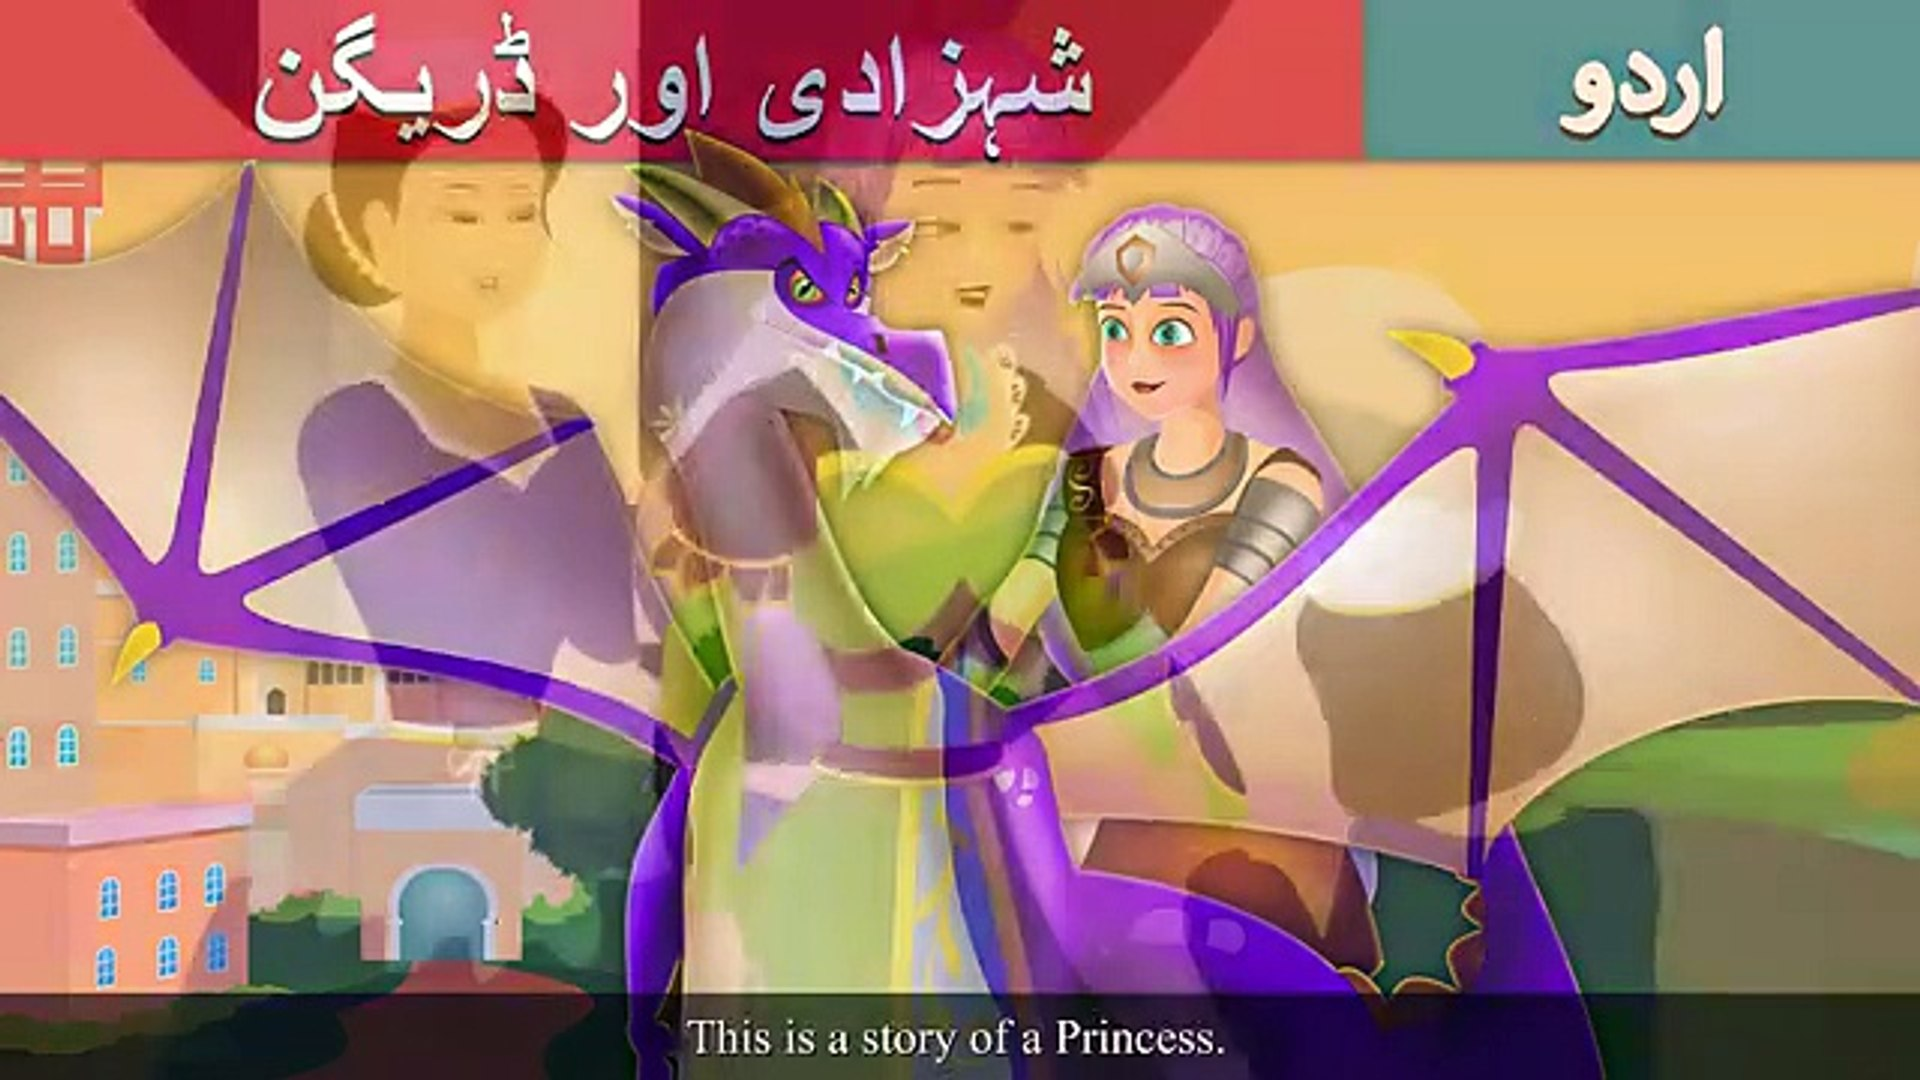 شہزادی اور ڈریگن - Princess and the Dragon in Urdu - Urdu Story - Urdu Fairy Tales